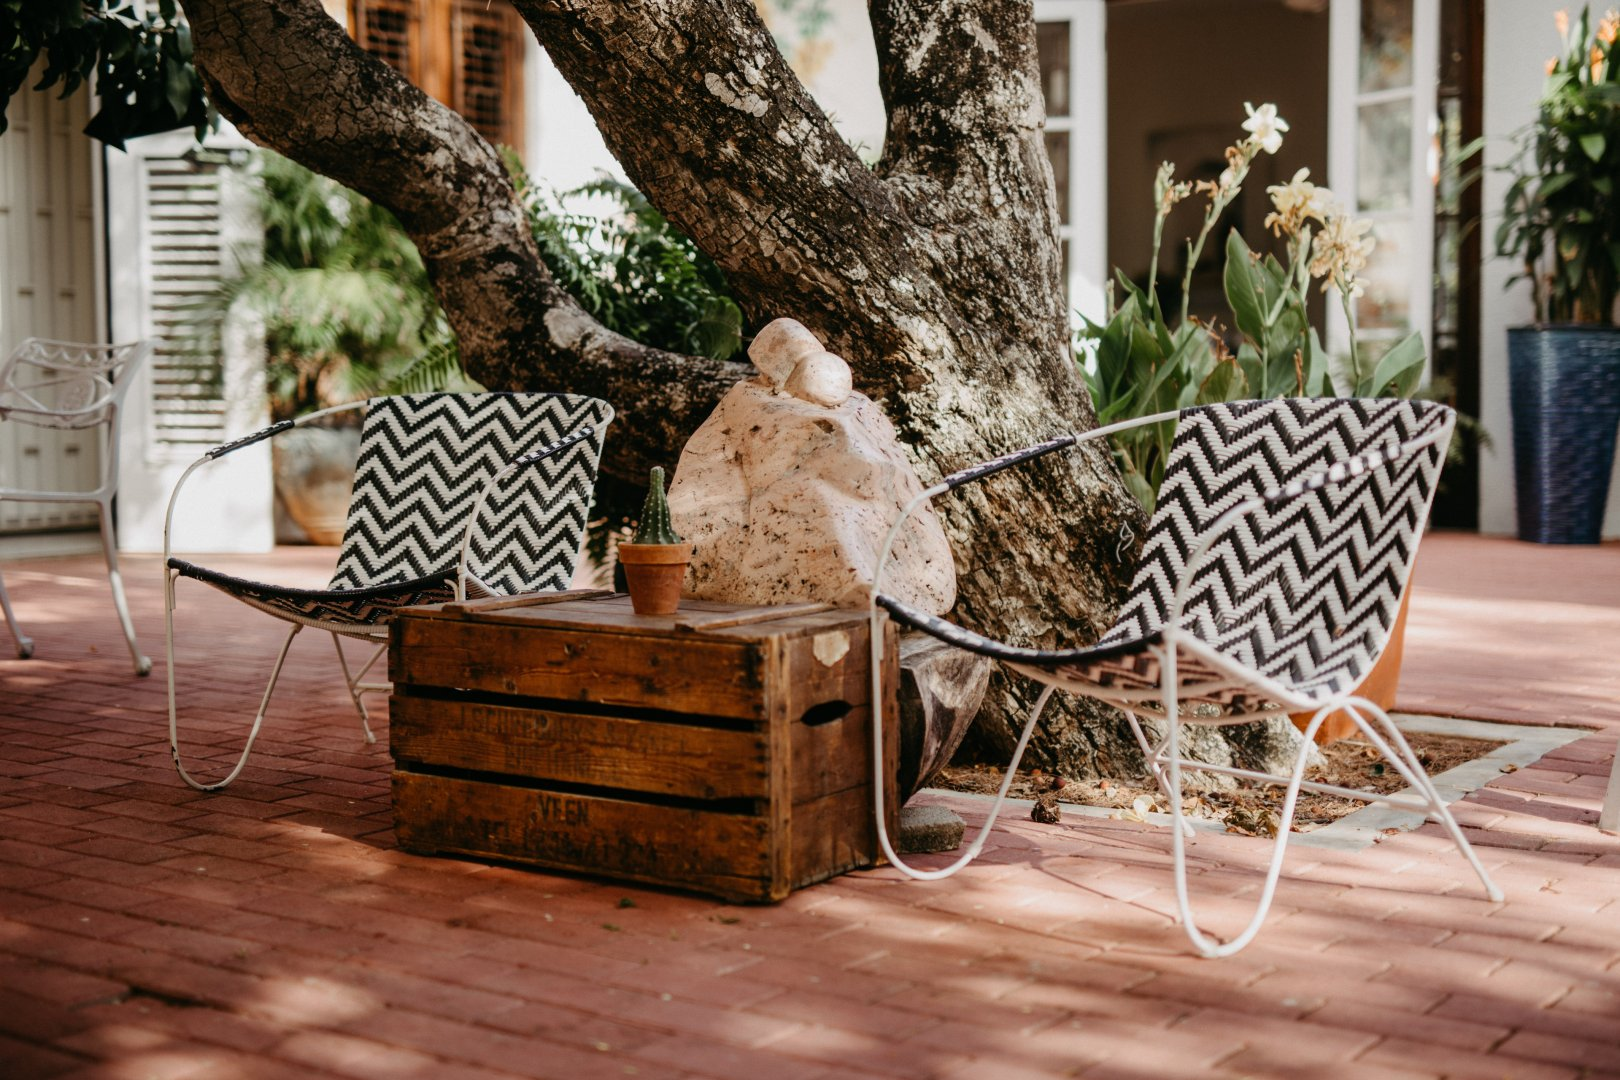 Furniture Tree Property Table Interior design Wood Room Home Wicker Hardwood Chair Outdoor furniture Real estate Floor House Backyard Outdoor table Flooring Branch Plant Coffee table Patio Landscape Flowerpot Yard Trunk Building